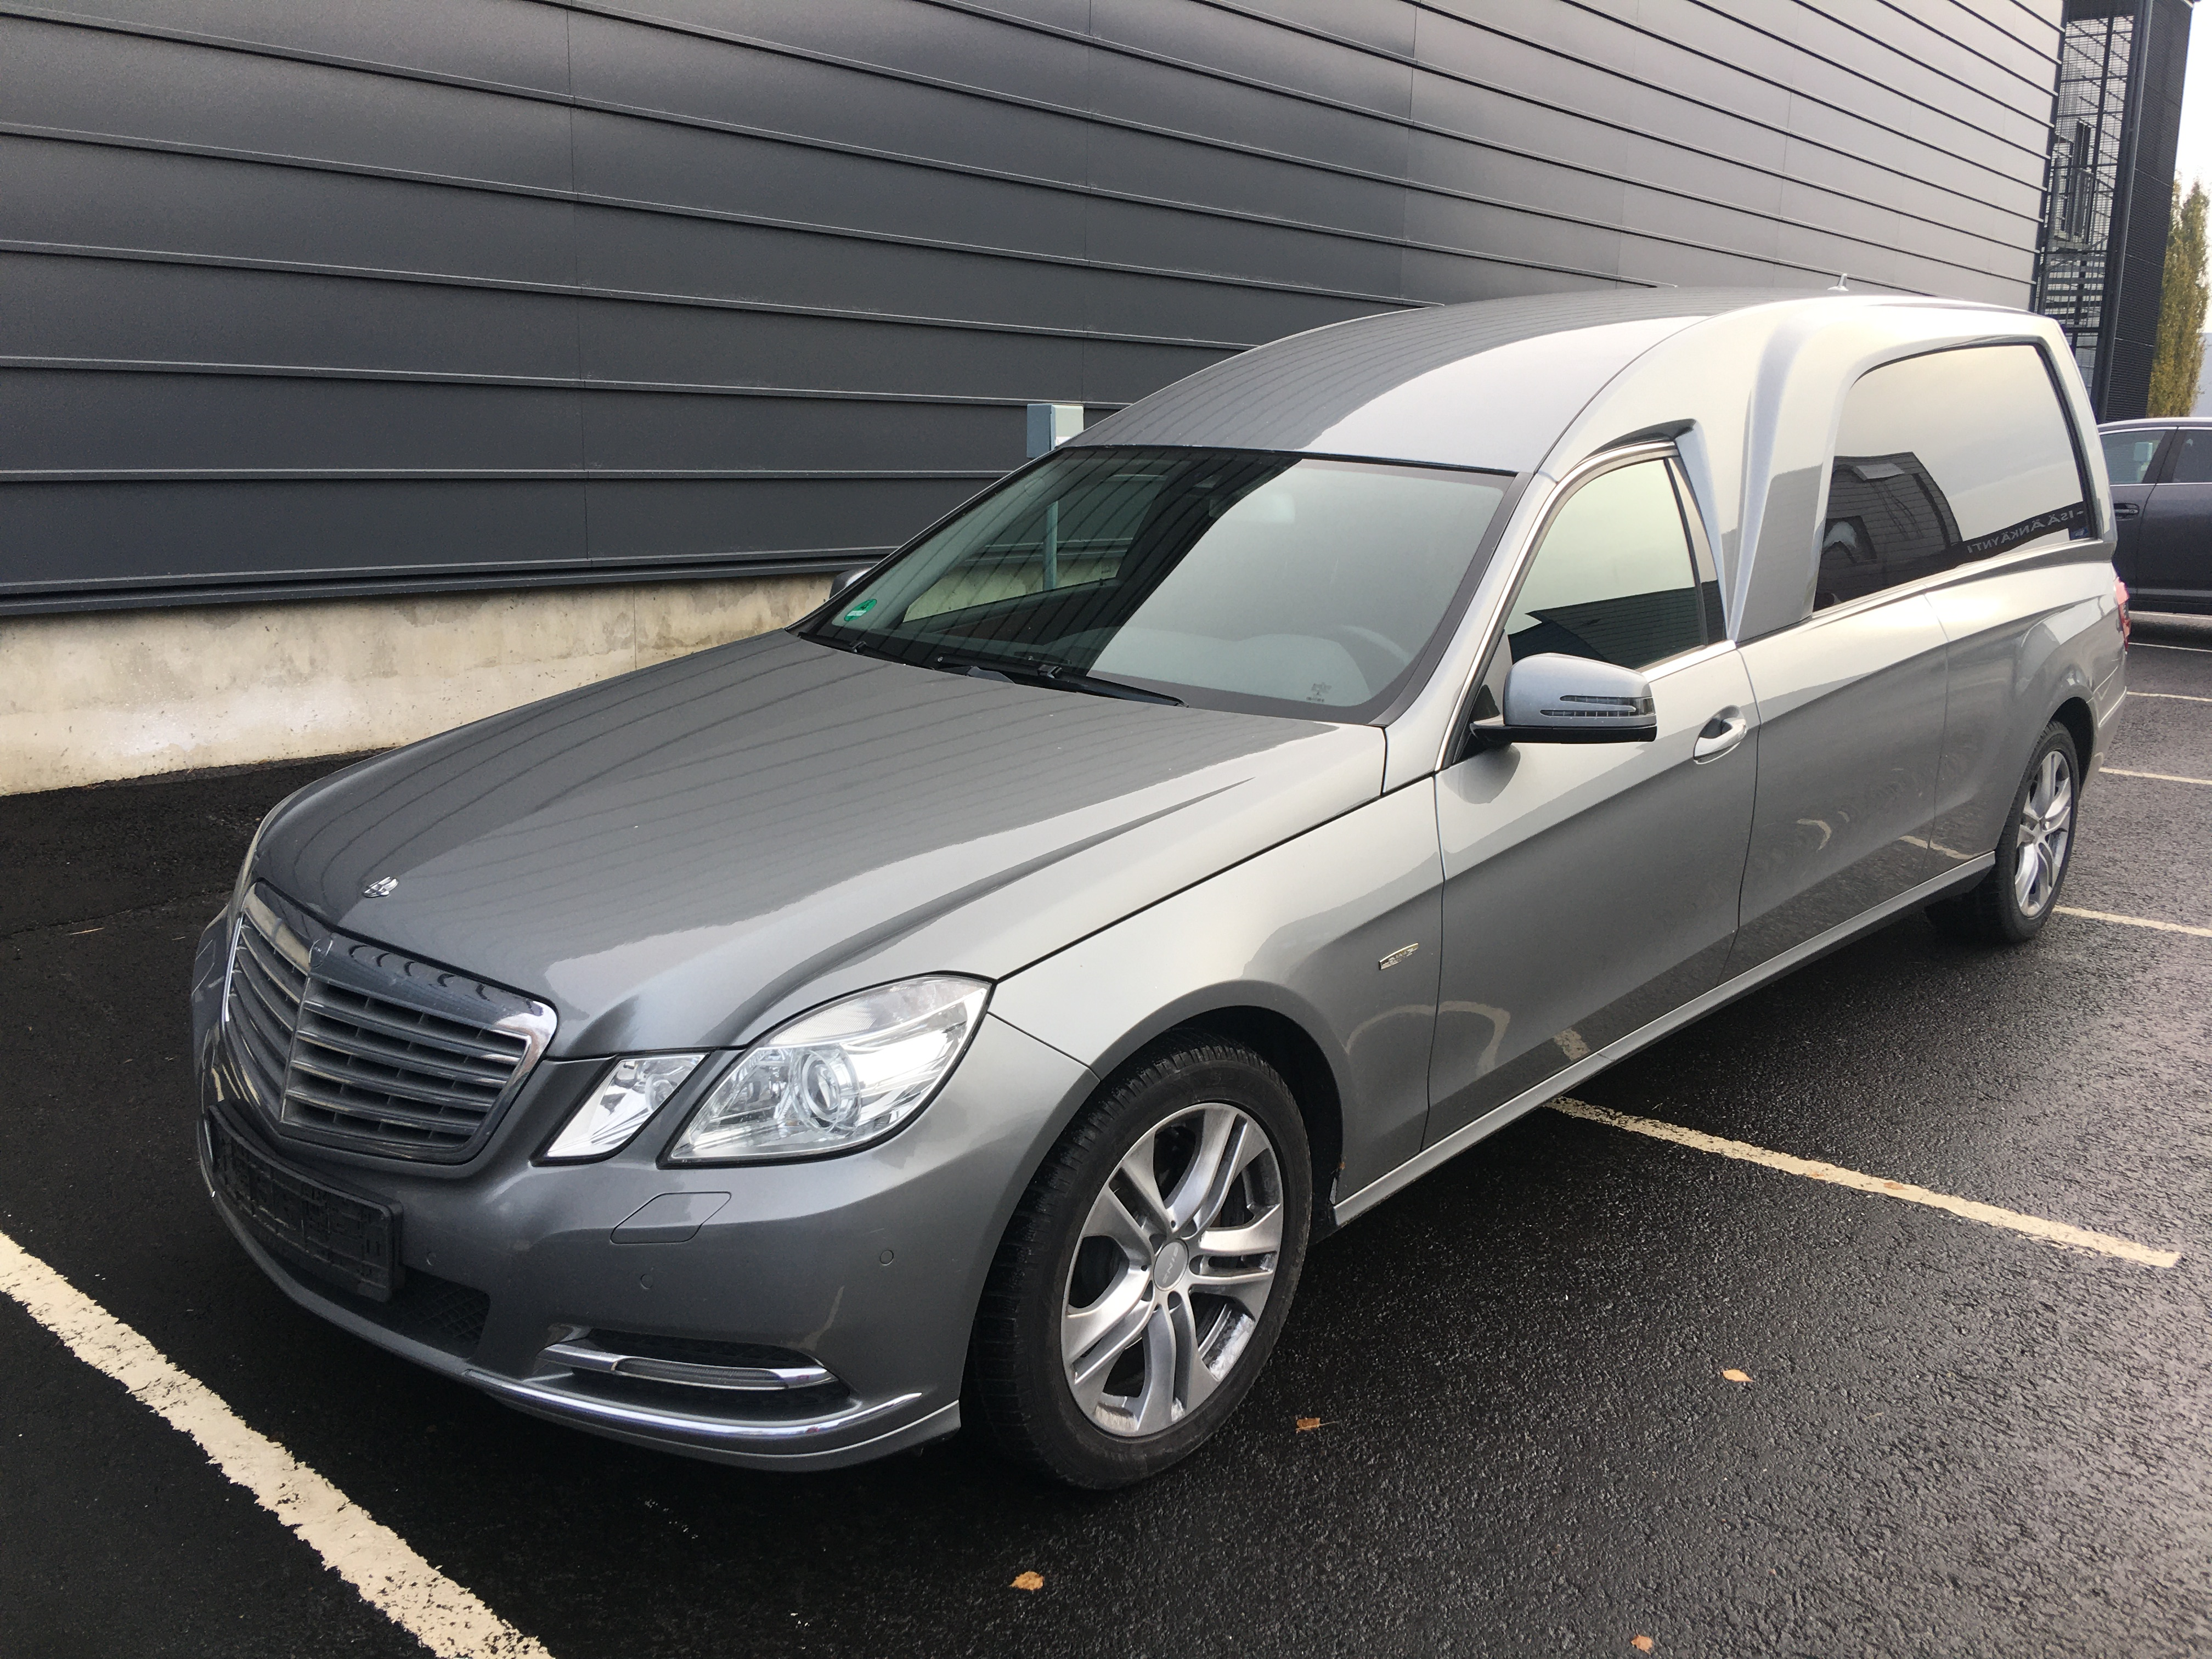 MB E 250 CDI *MYYTY*